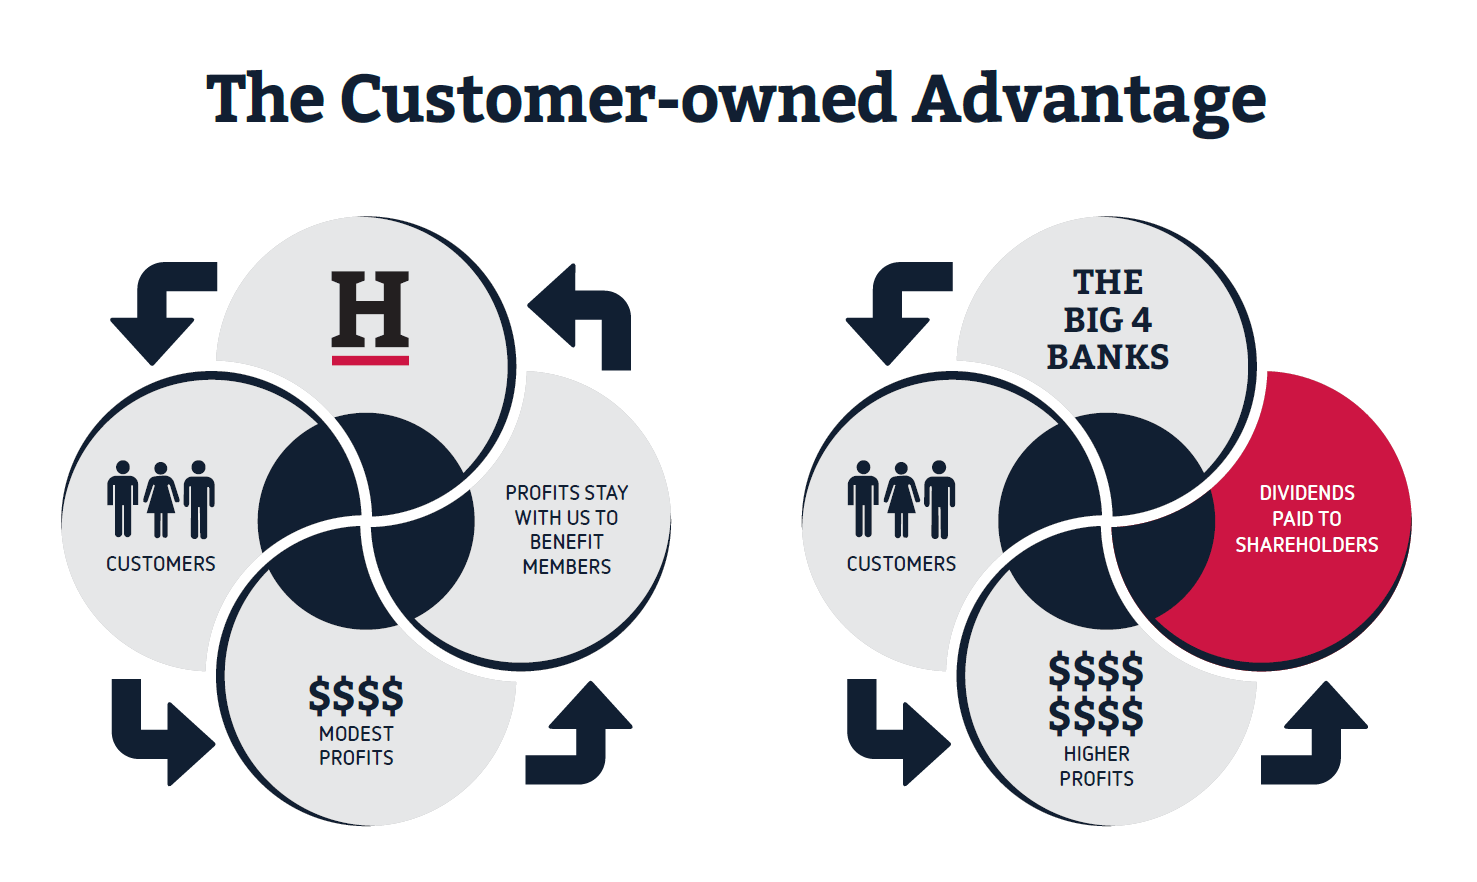 The customer-owned advantage